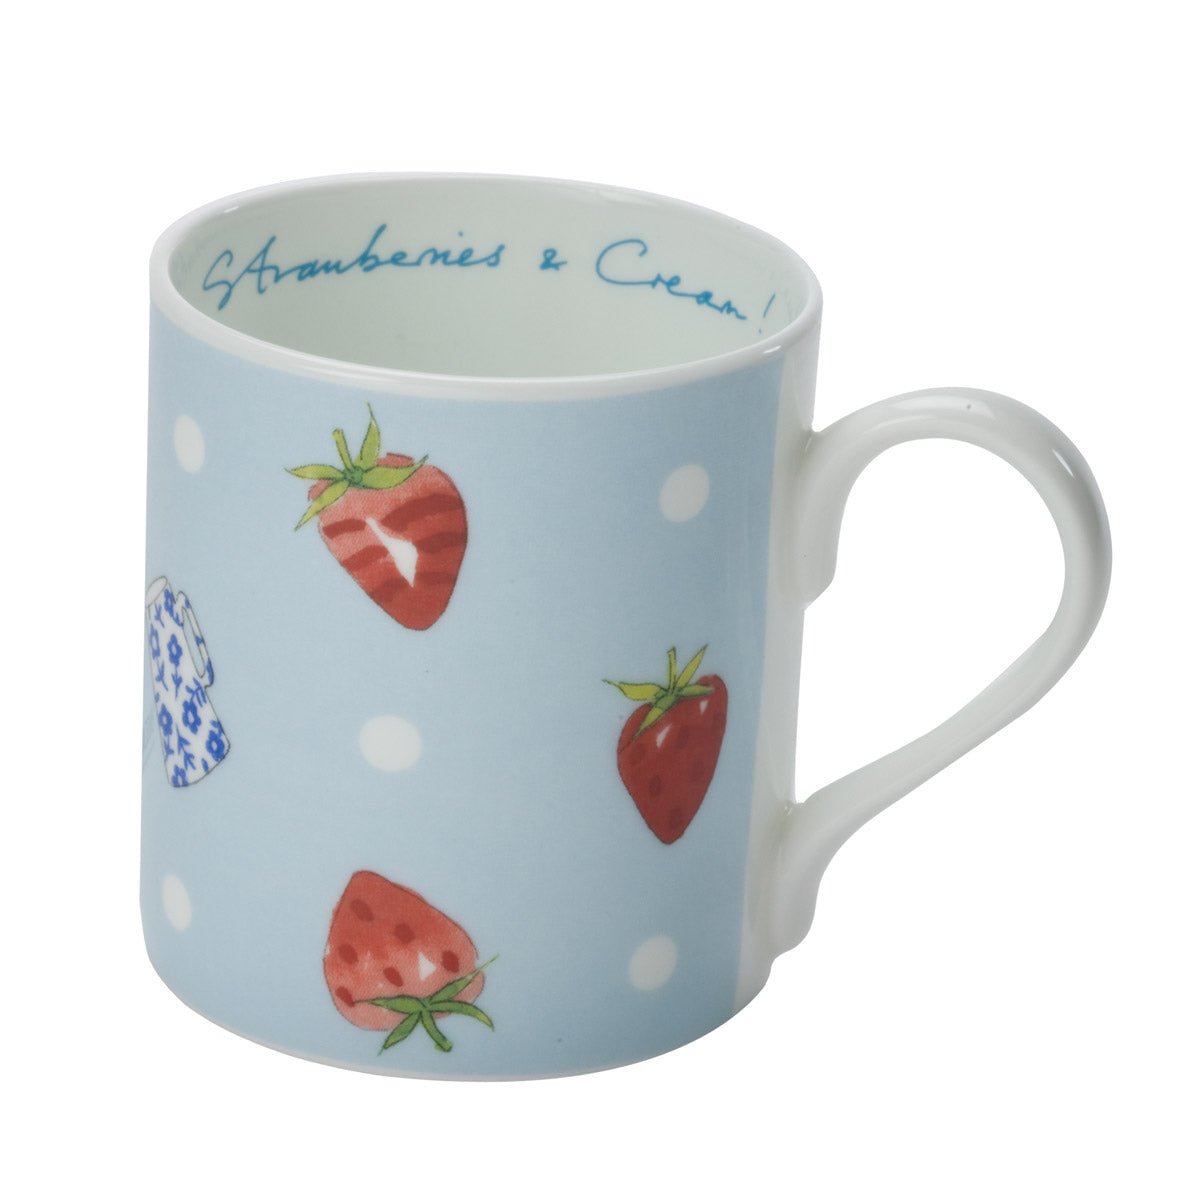 Strawberries & Cream Mug - Blue